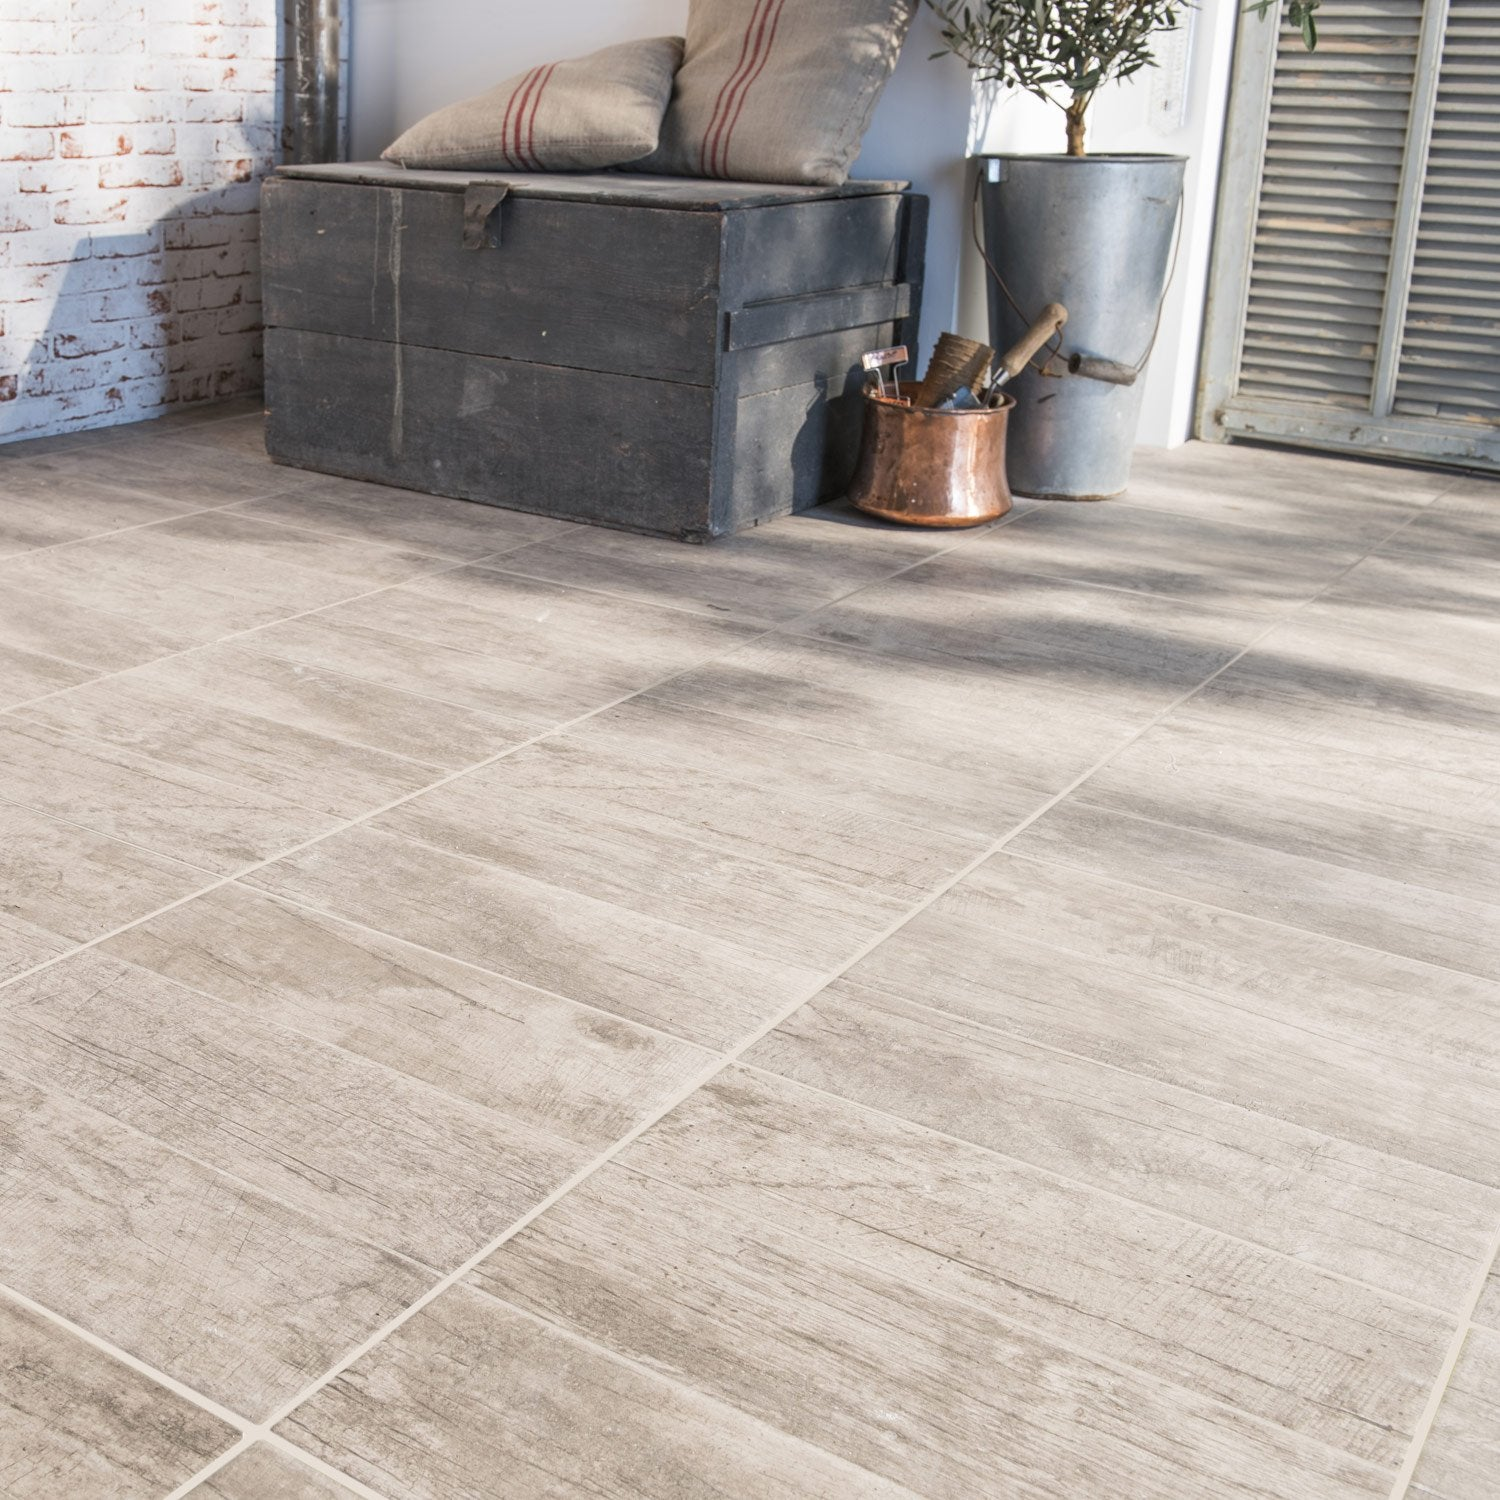 Carrelage sol capuccino effet bois river x cm for Carrelage le roy merlin